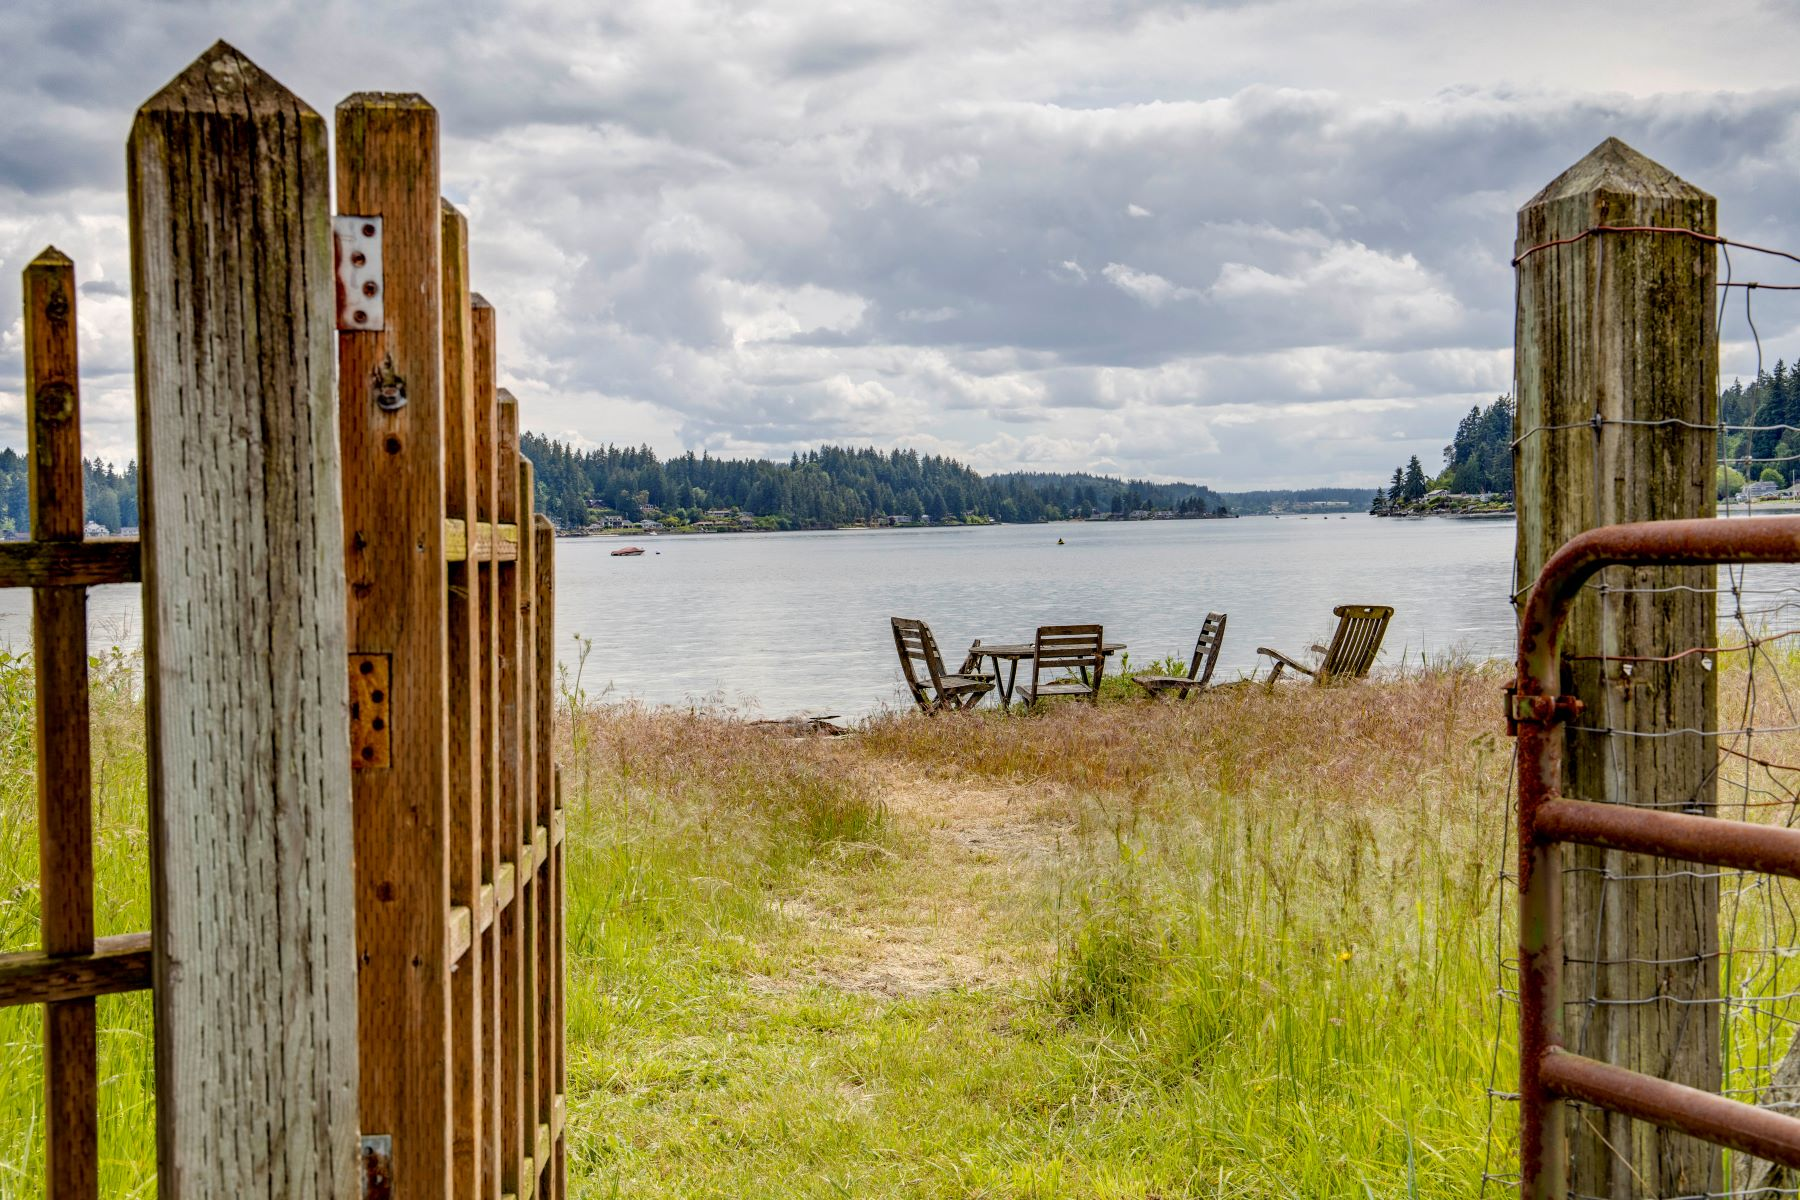 Land for Sale at 4552 Point White Dr NE Unite #B, Bainbridge Island, WA, 98110 4552 Point White Dr NE Unit #B Bainbridge Island, Washington 98110 United States